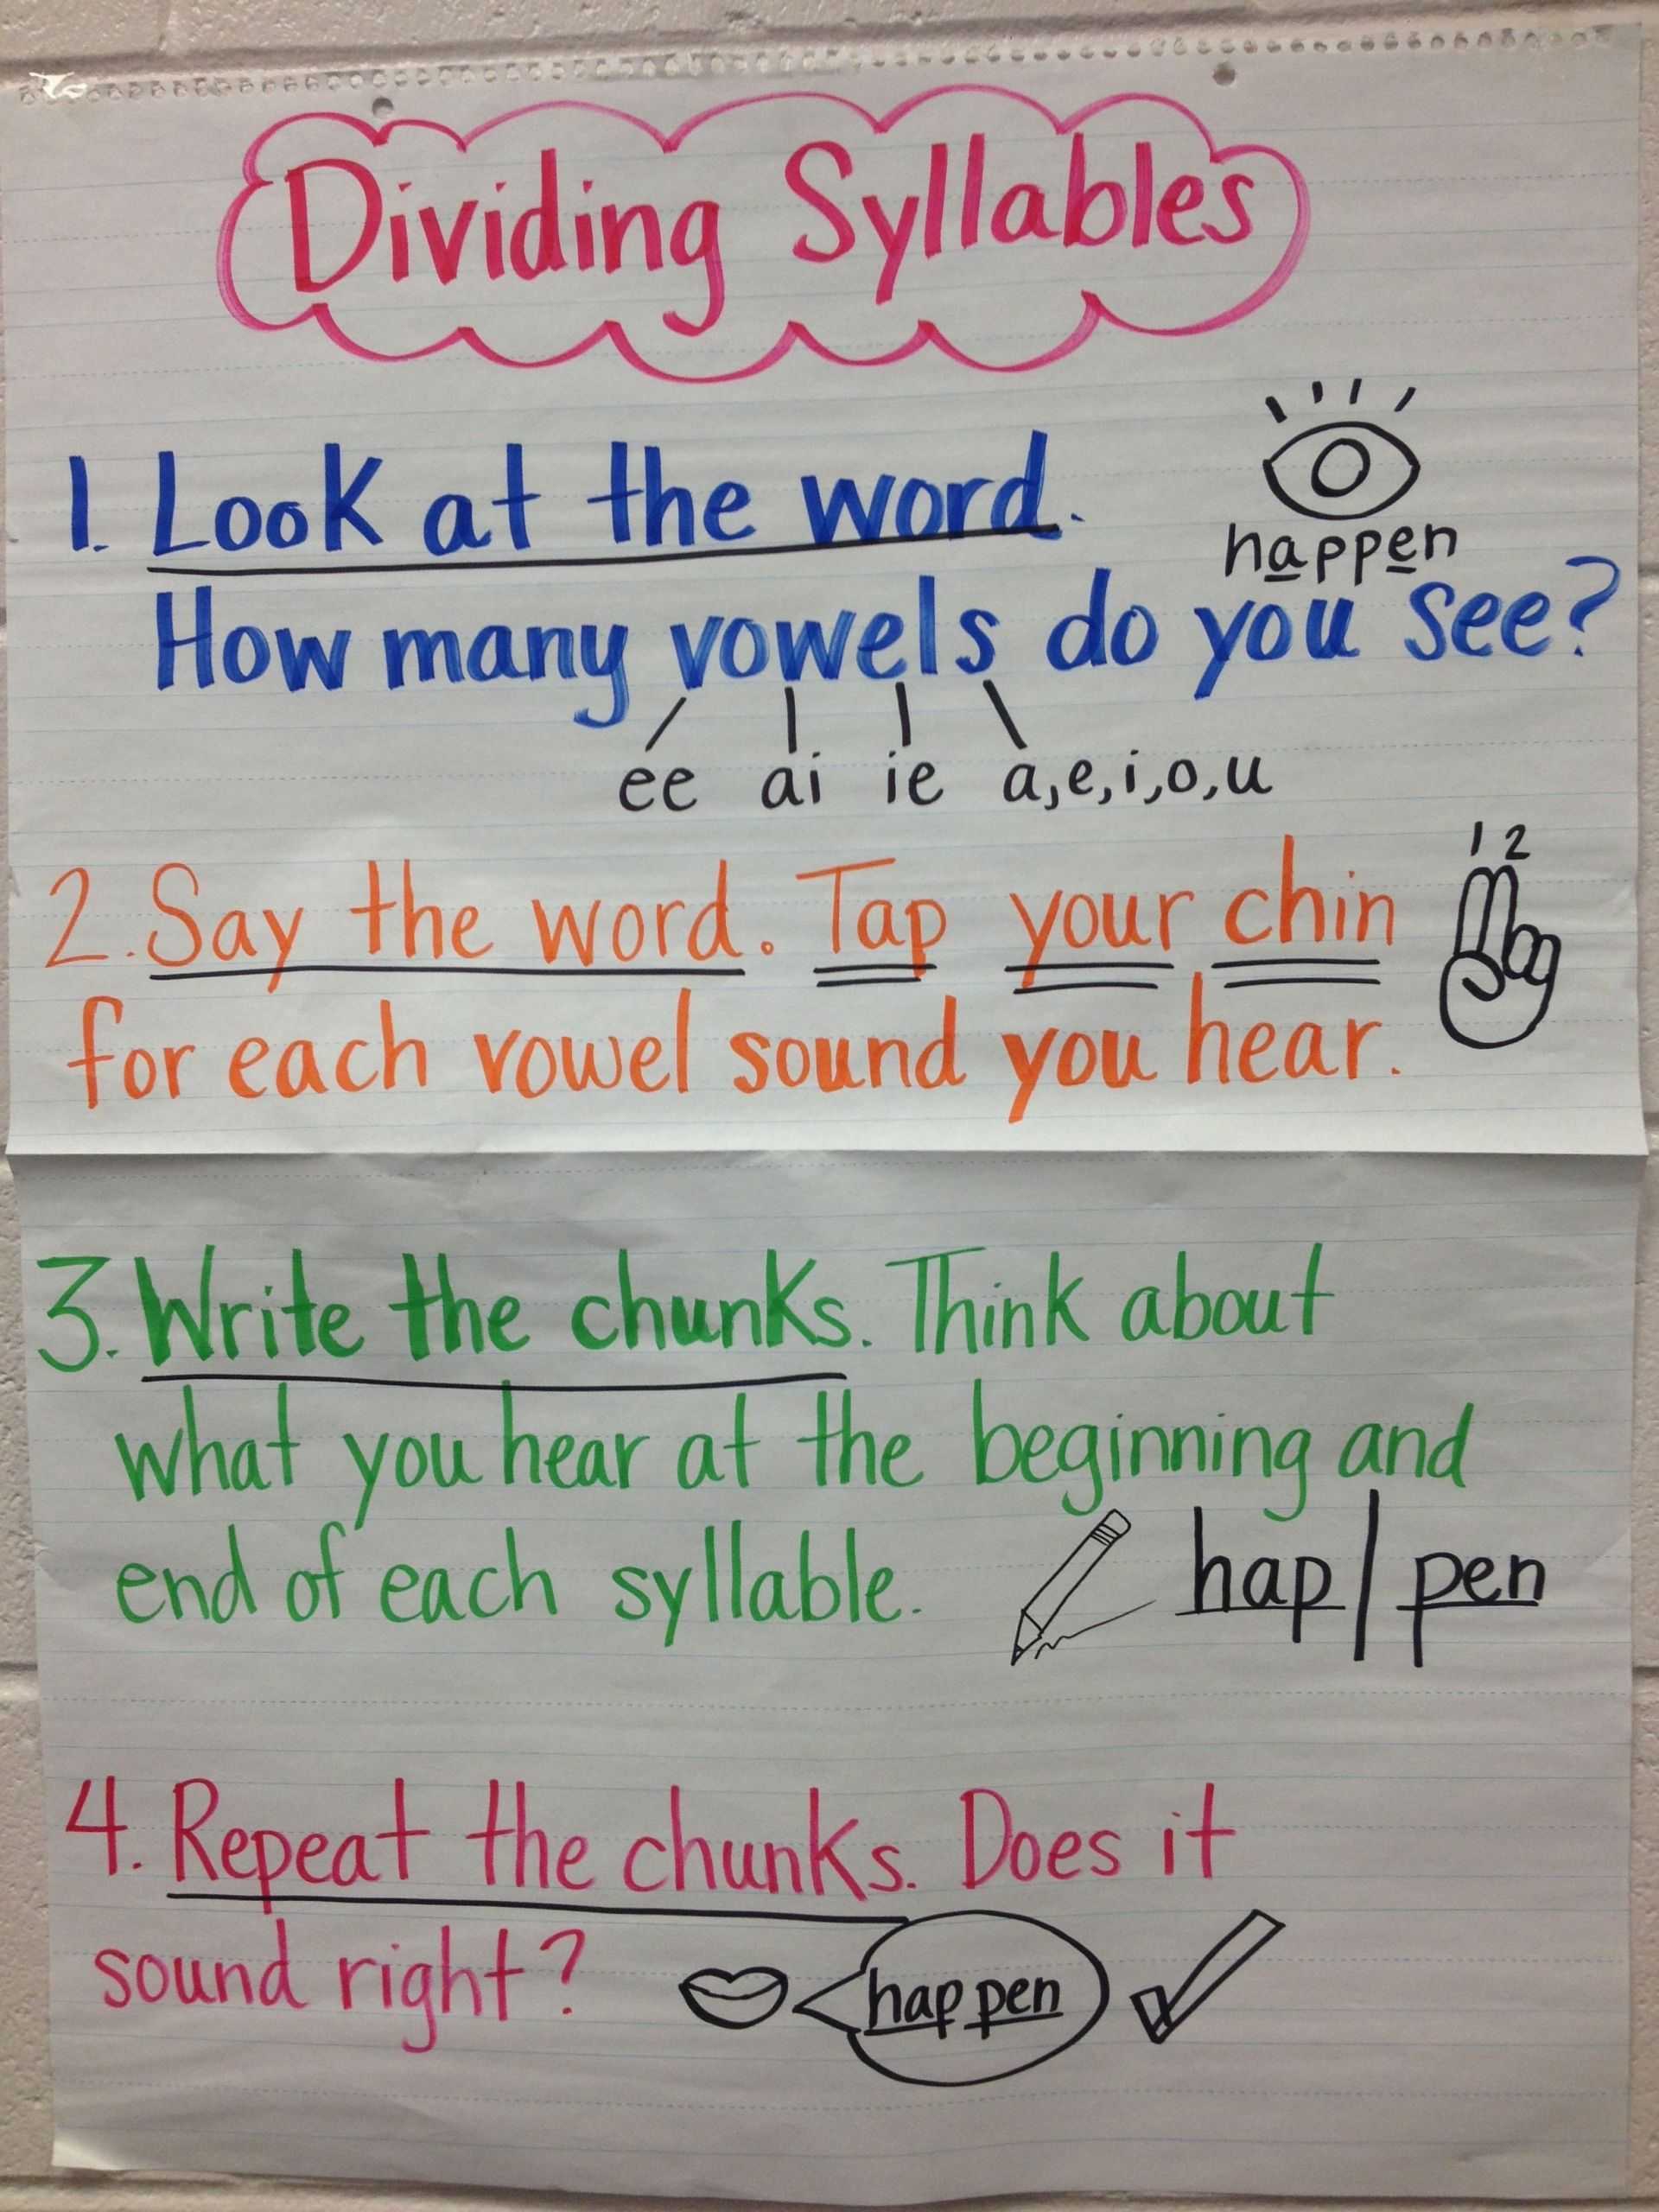 6 New Free Syllable Worksheets For Kindergarten In 2020 Syllables Anchor Charts Teaching Syllables Syllables Activities